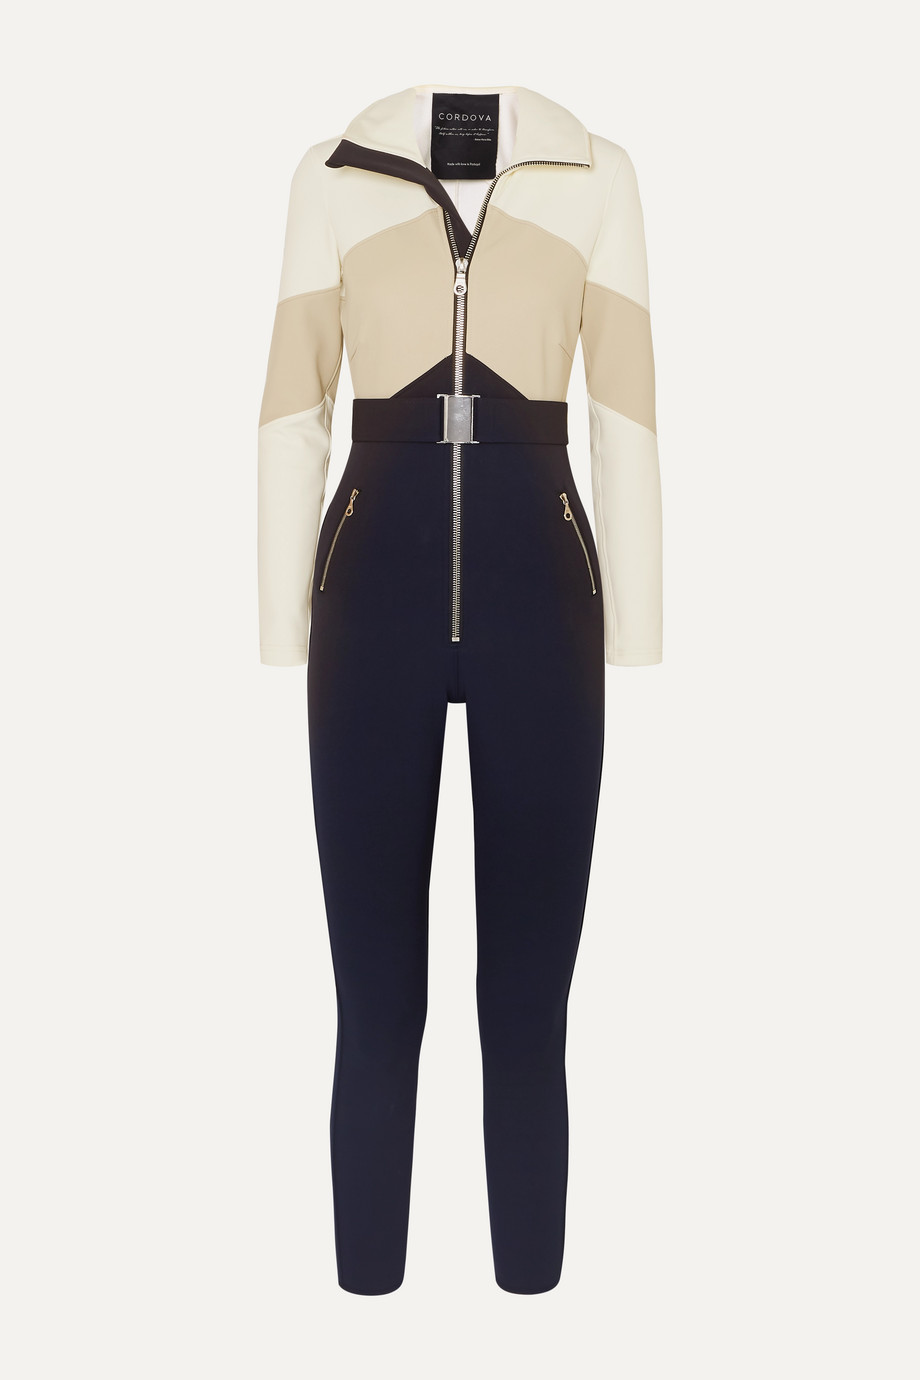 Cordova The Alta belted stretch ski suit